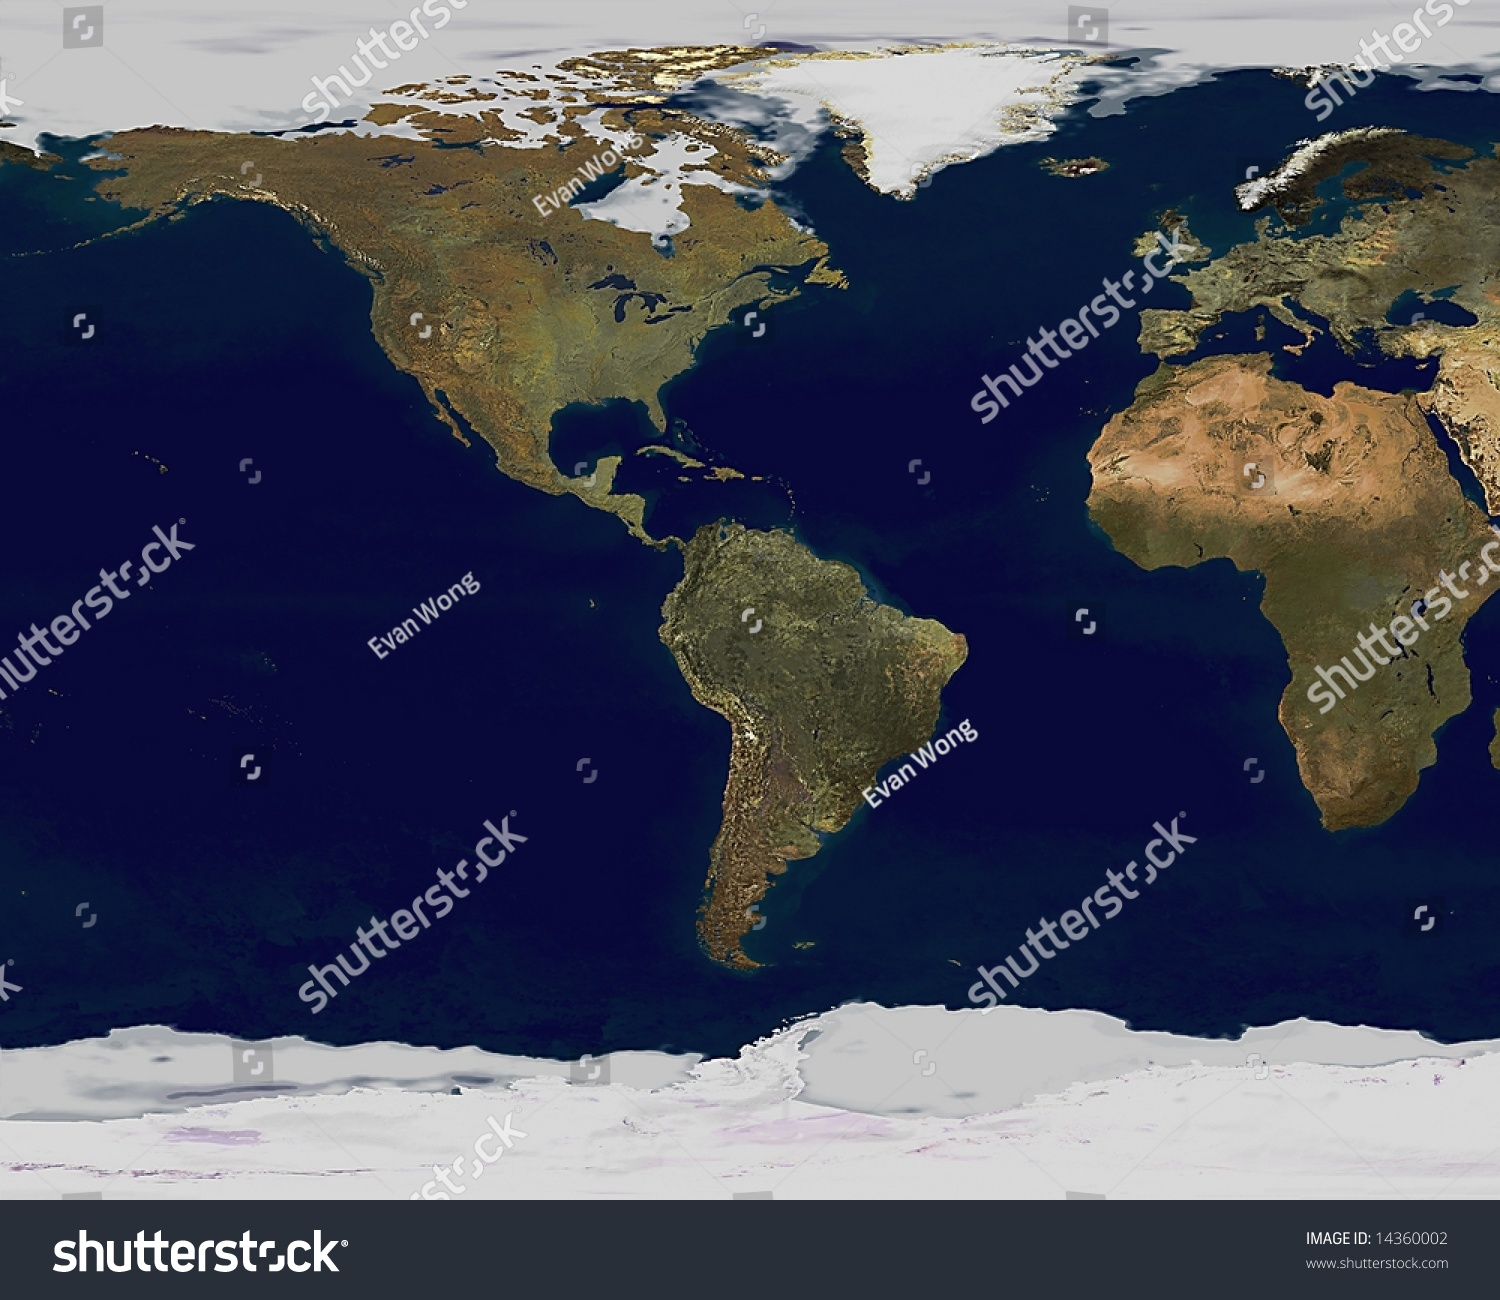 Satellite view global earth map stock illustration 14360002 satellite view of global earth map gumiabroncs Image collections